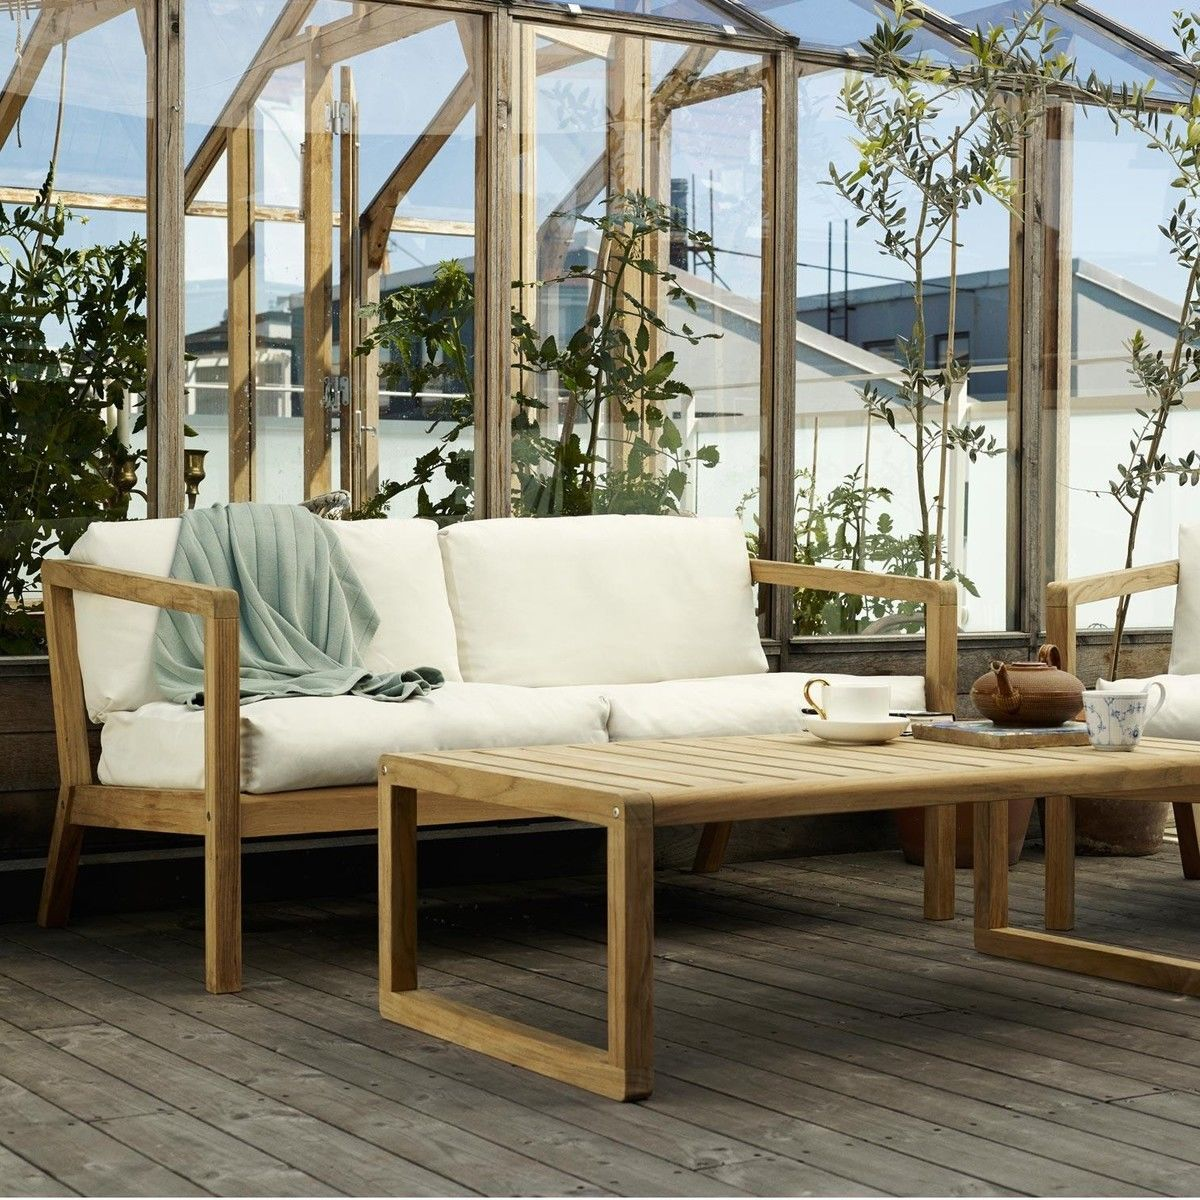 Lounge sofa 2 sitzer outdoor  Virkelyst Outdoor 2-seater sofa | Skagerak | AmbienteDirect.com